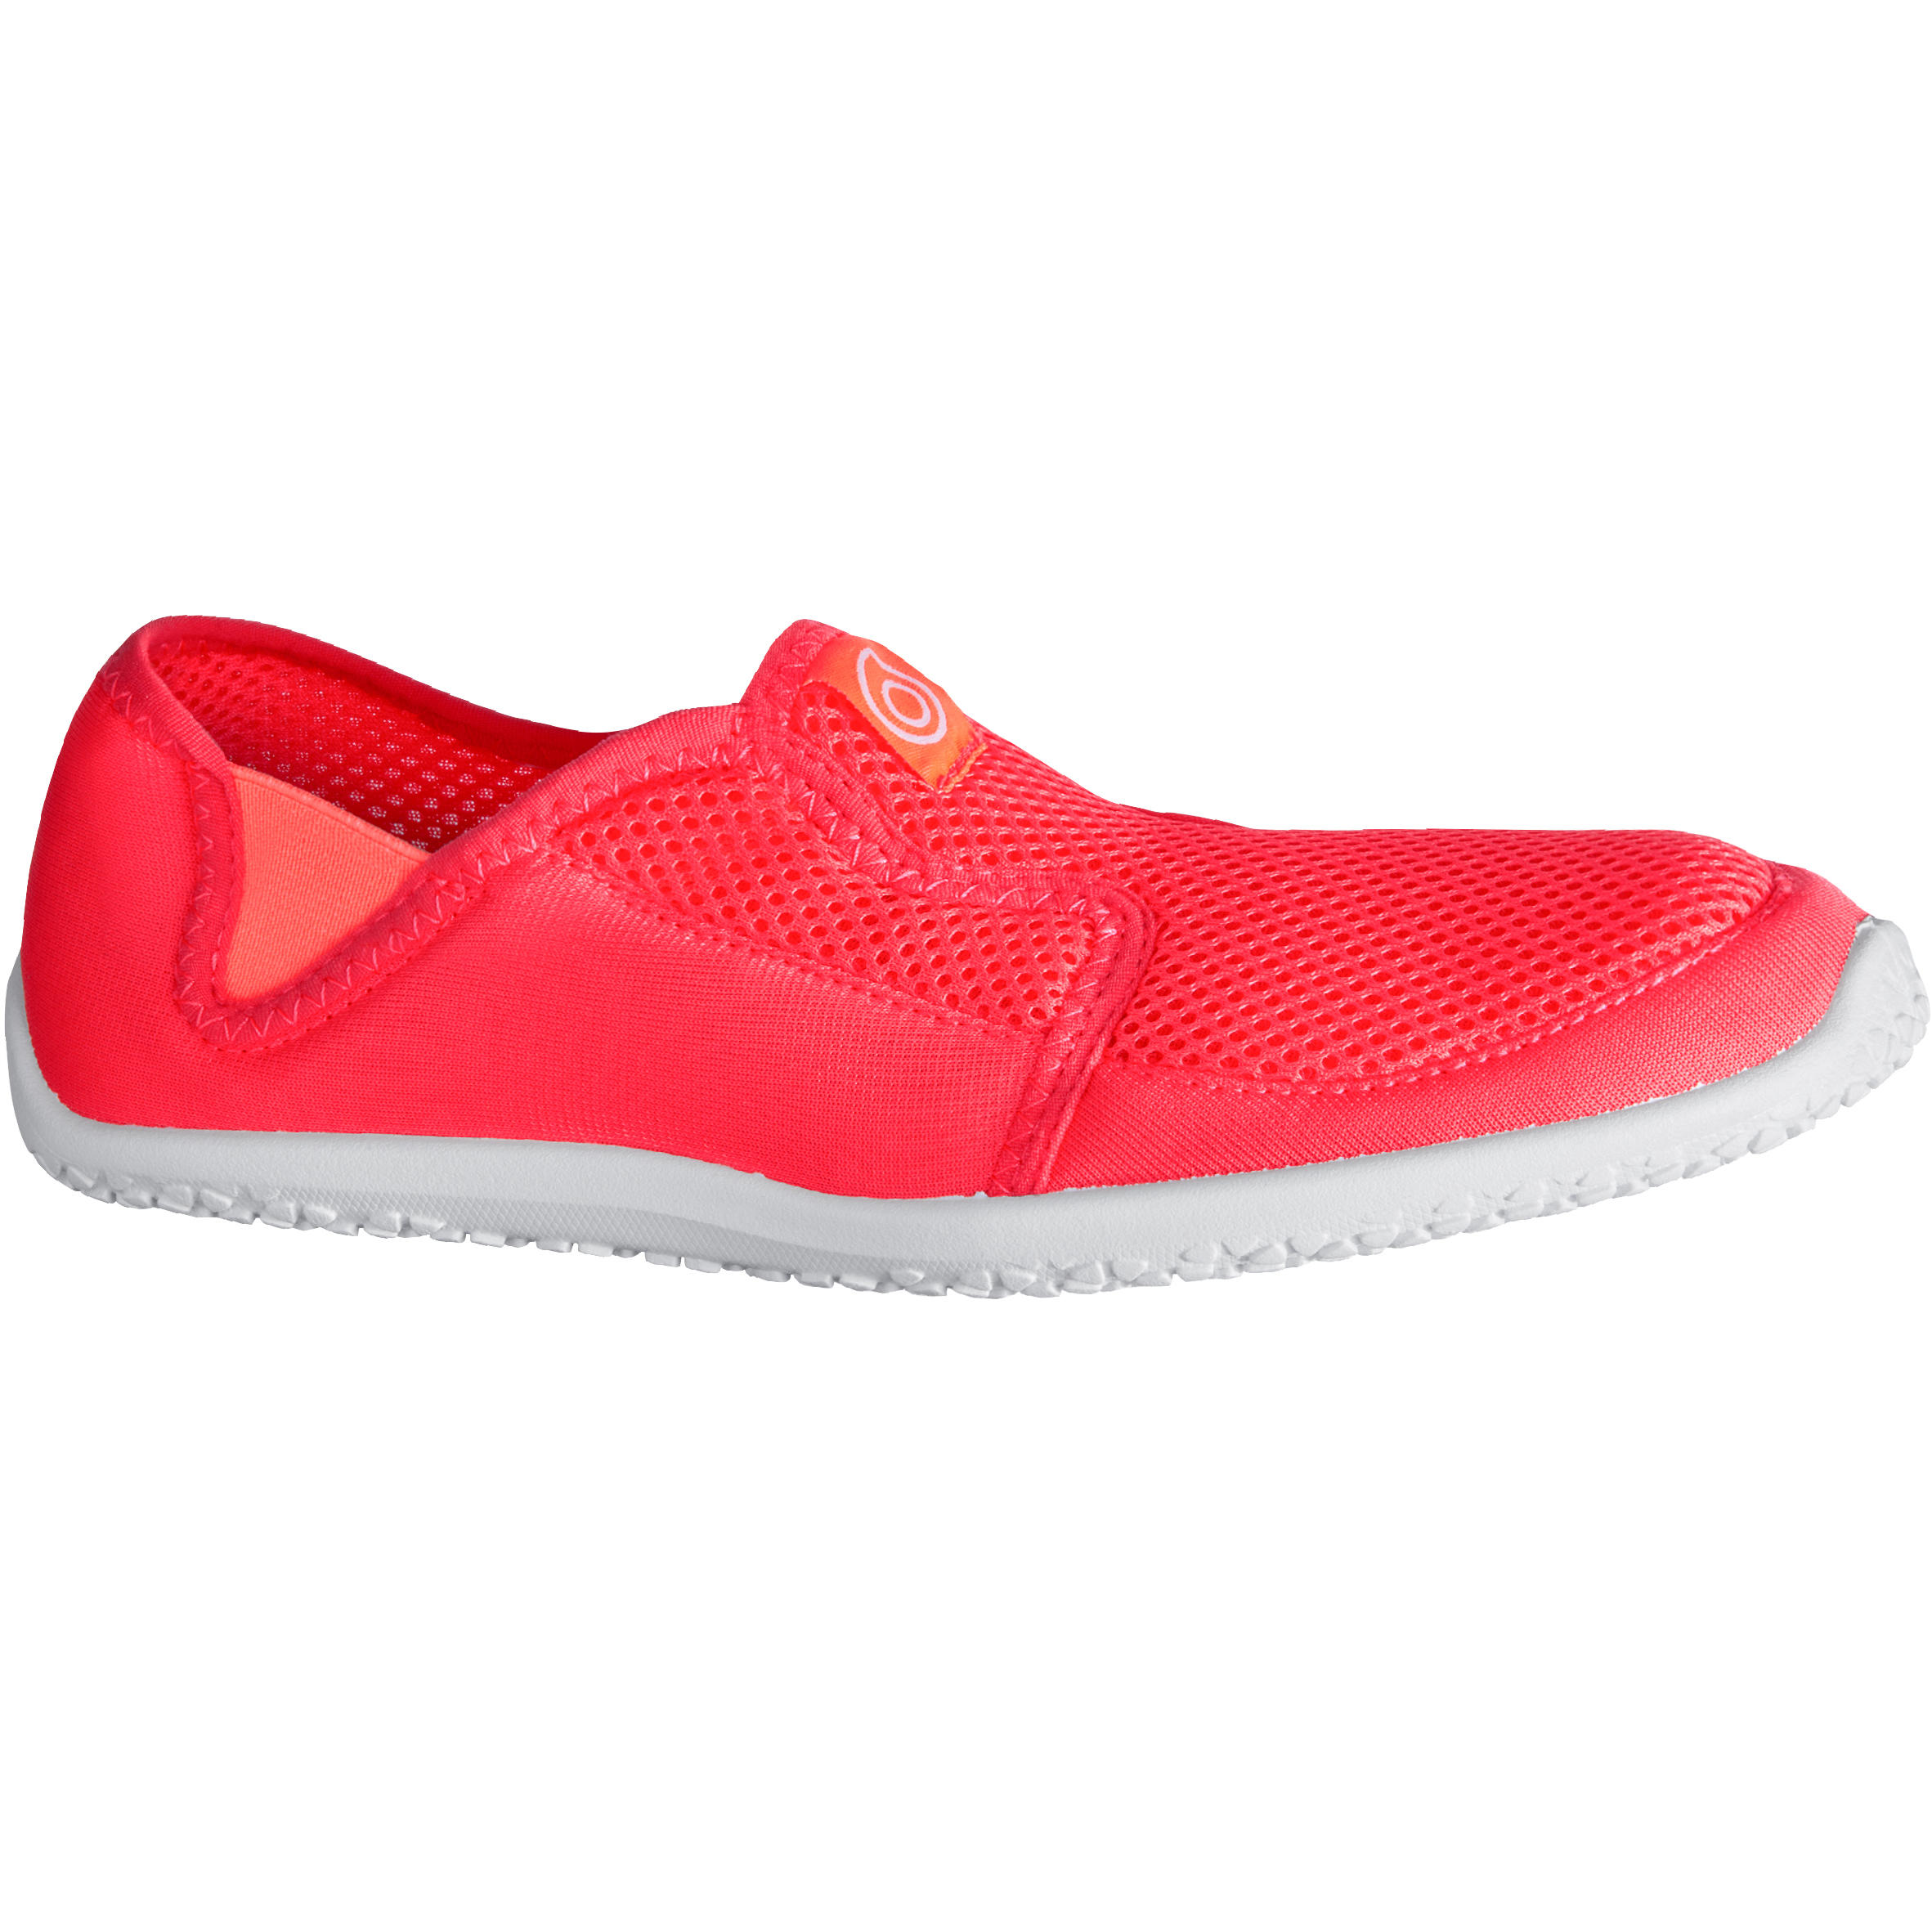 120 adult Aquashoes Pink